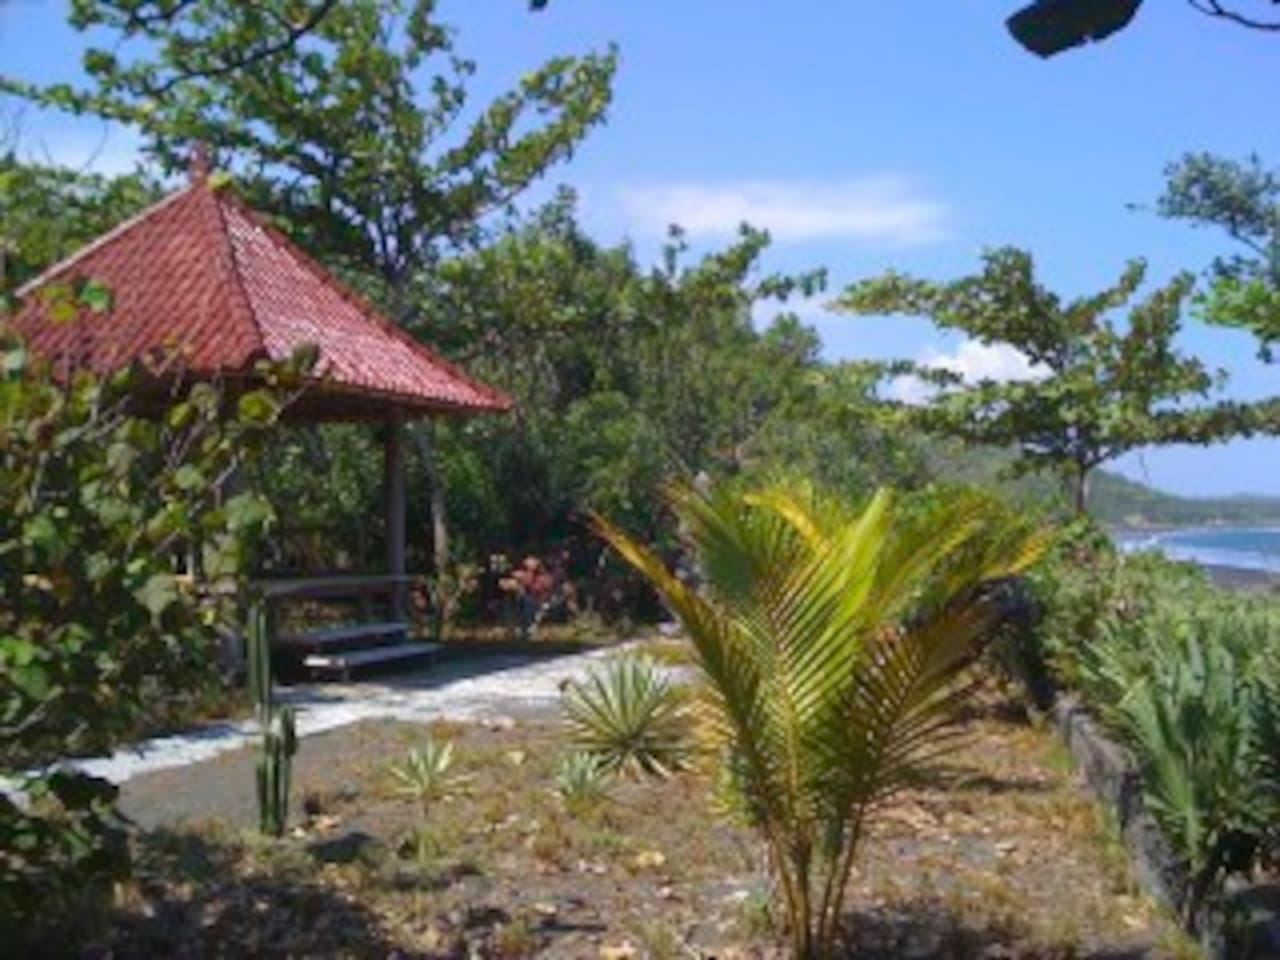 Baleh Bengong on the Puri Bali Hatchery property near the quiet beach. Absolute privacy.